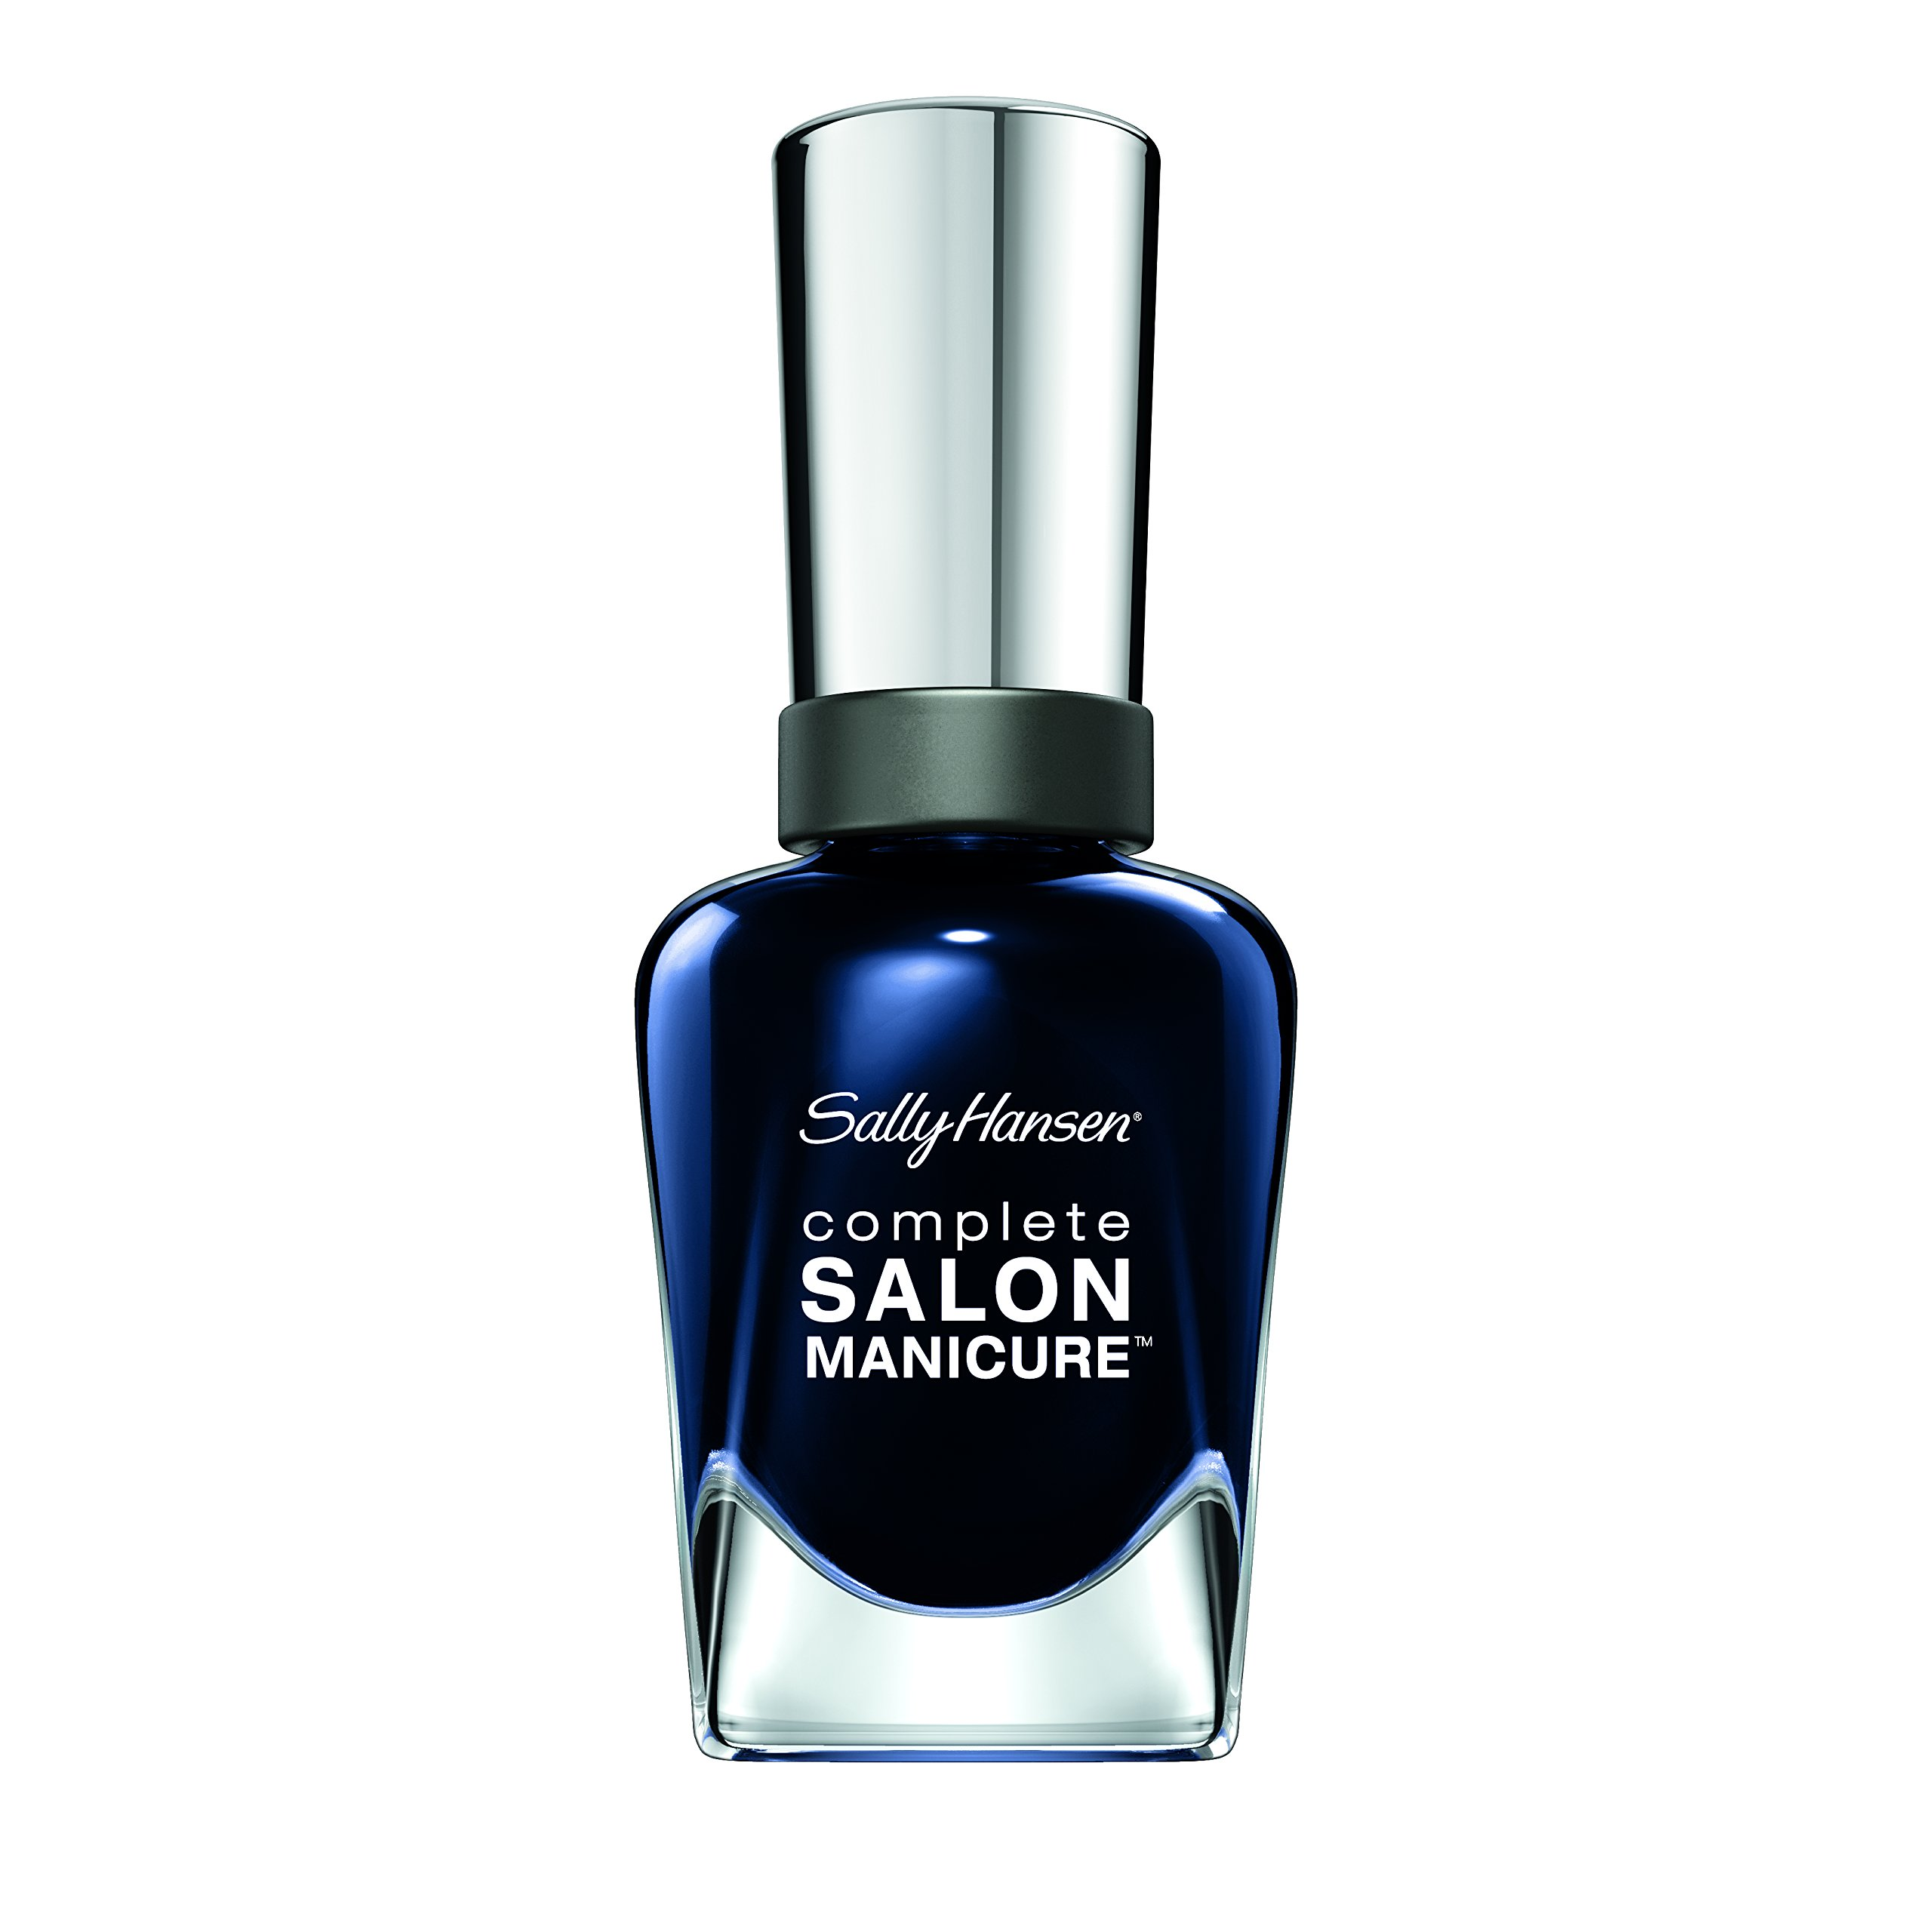 Sally Hansen Complete Salon Manicure, Dark Hue-Moor, 0.5 Fluid Ounce